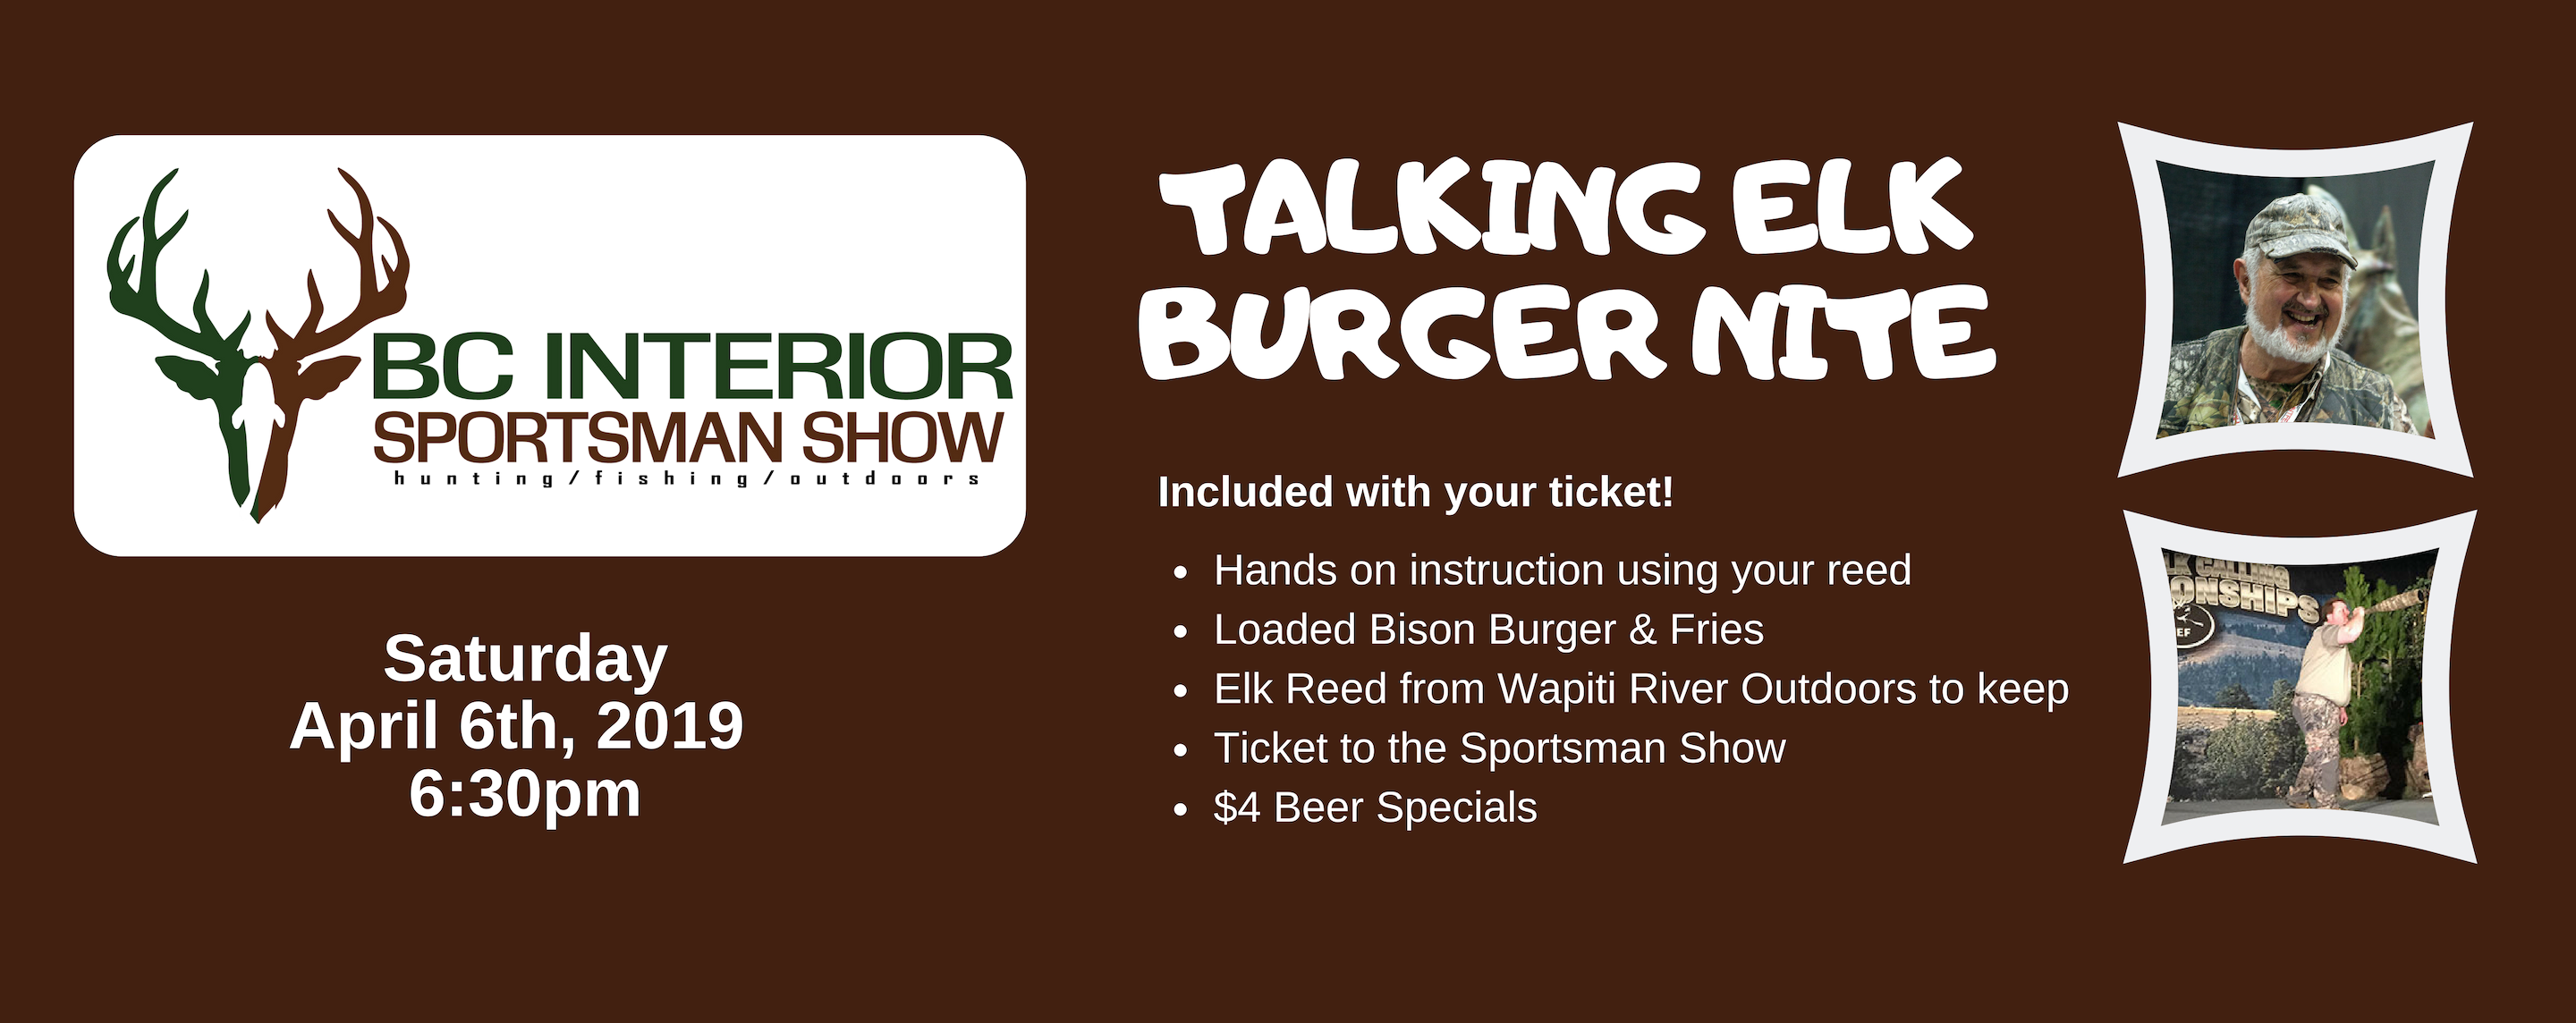 Talking Elk Burger Night